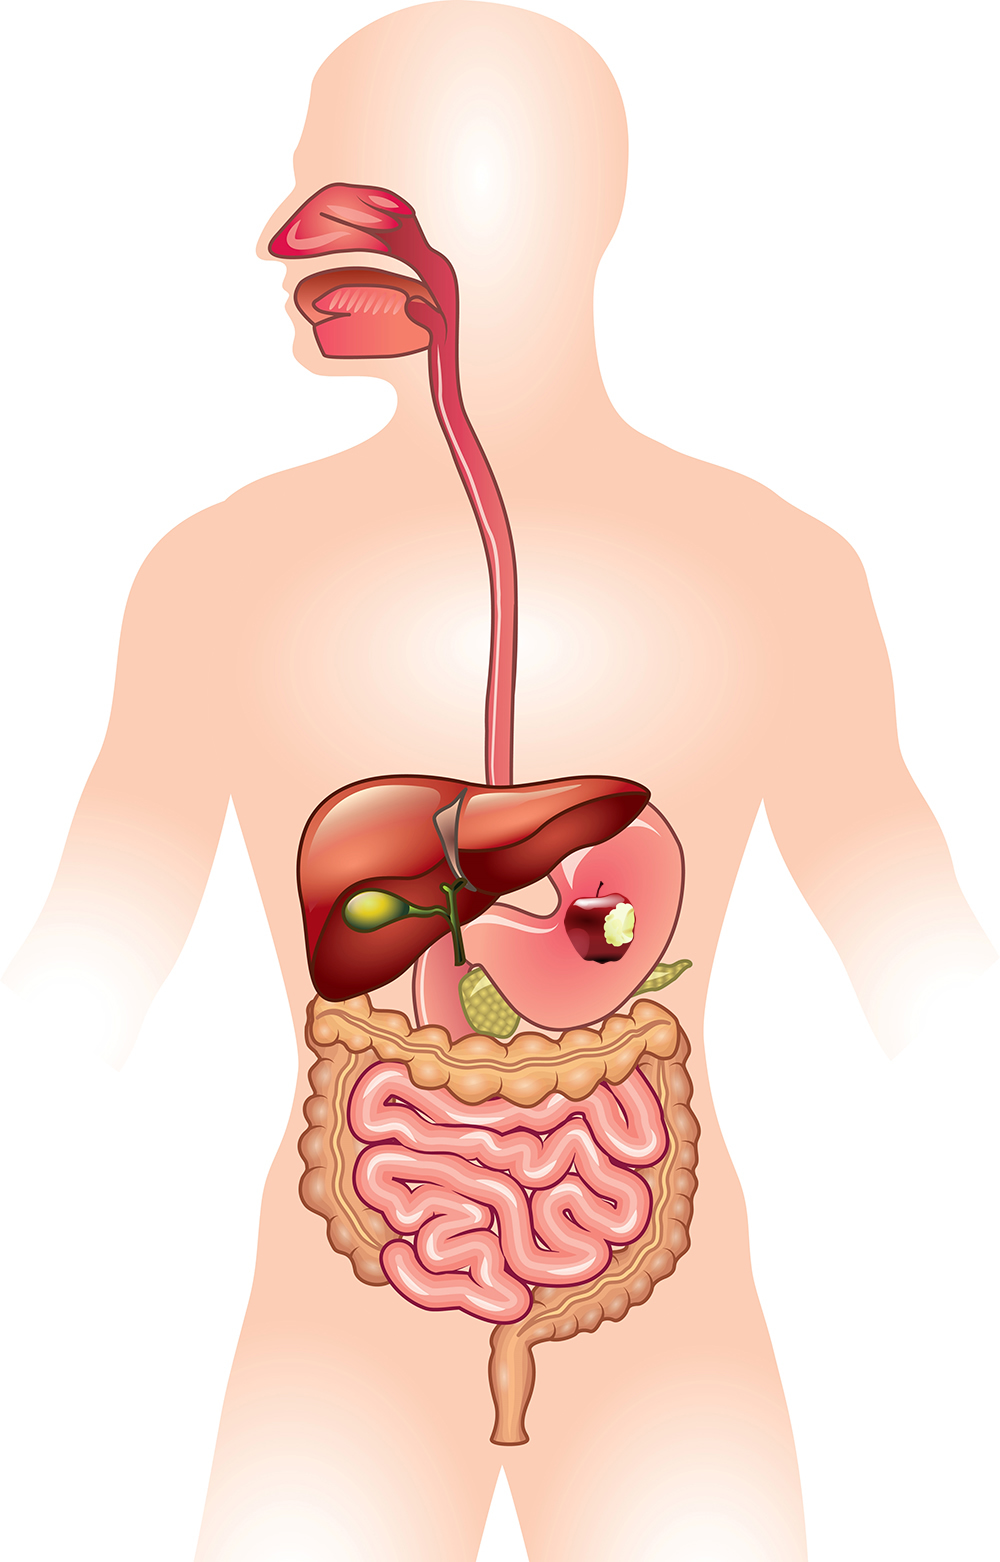 Picture Of Digestive System With Labels : picture, digestive, system, labels, SNC2P